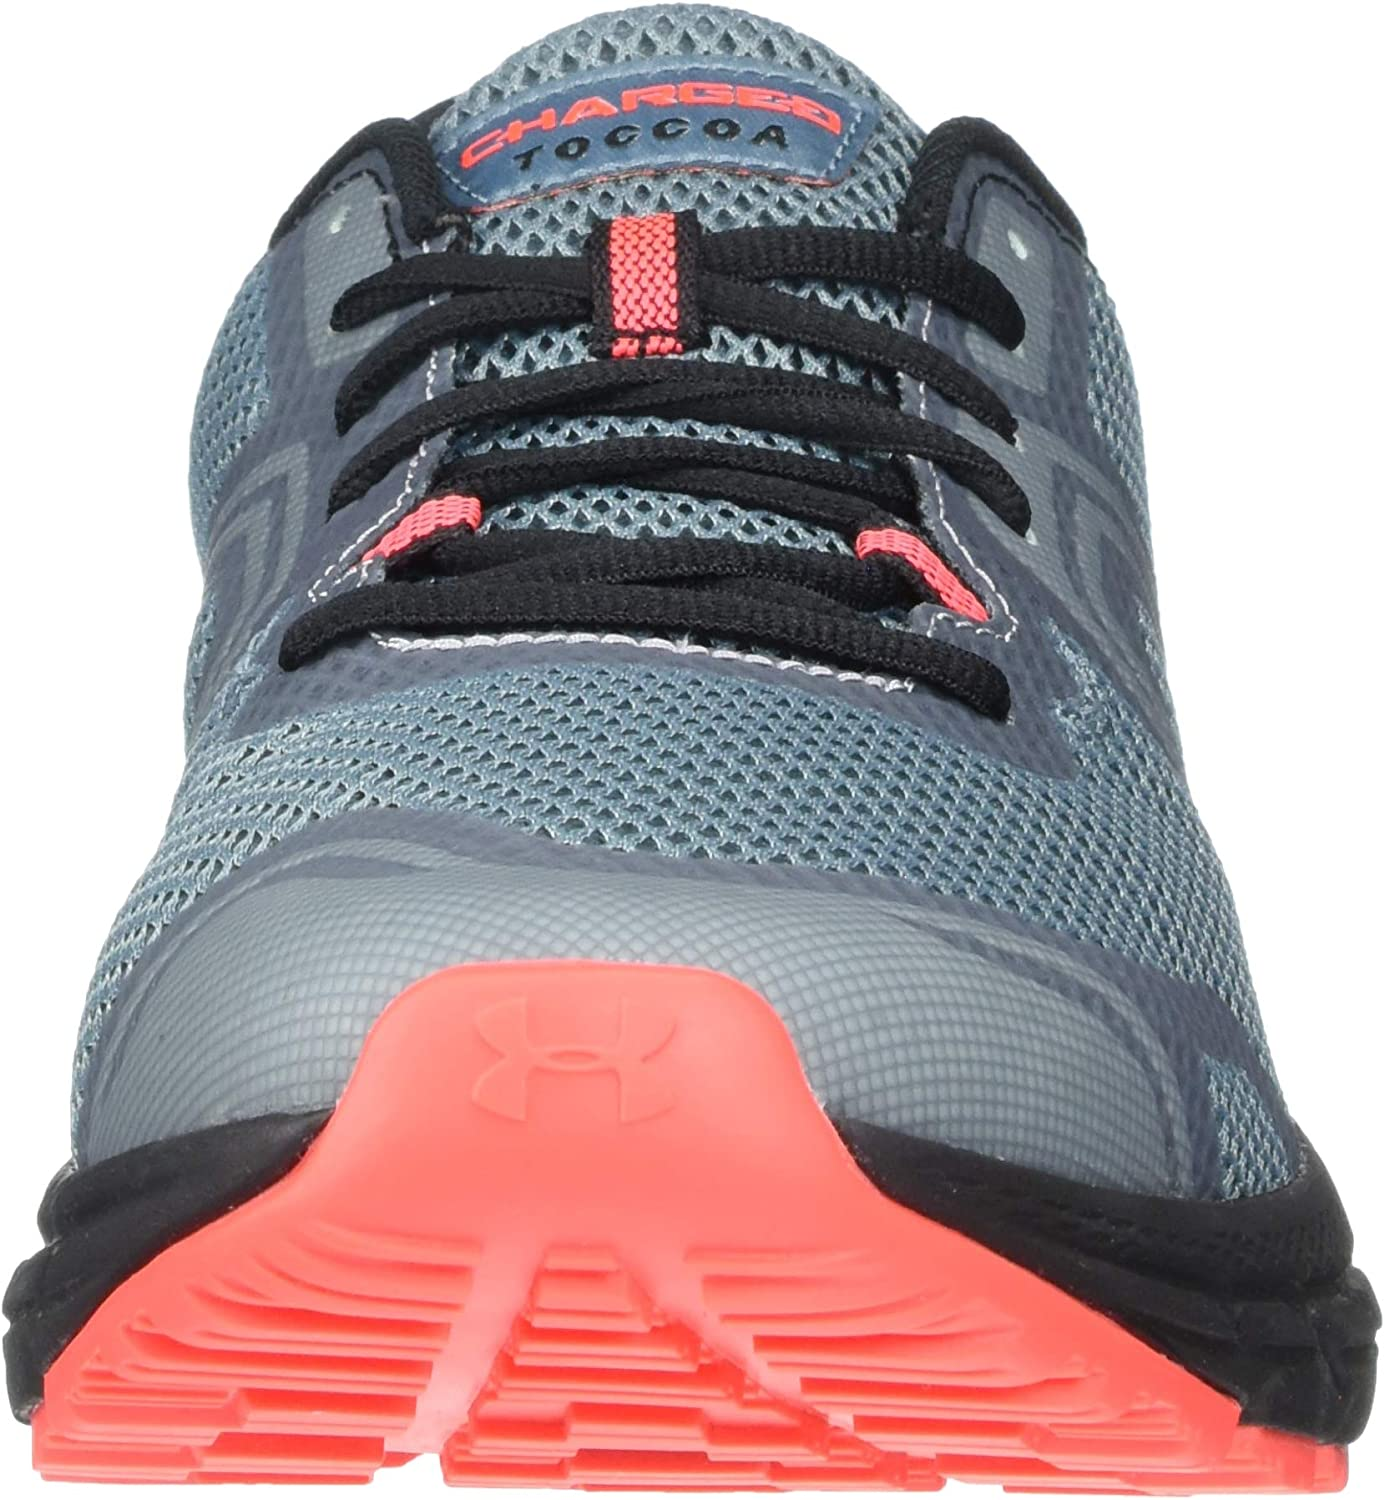 | Under Armour Men's Charged Toccoa 3 Sneaker | Fitness & Cross-Training